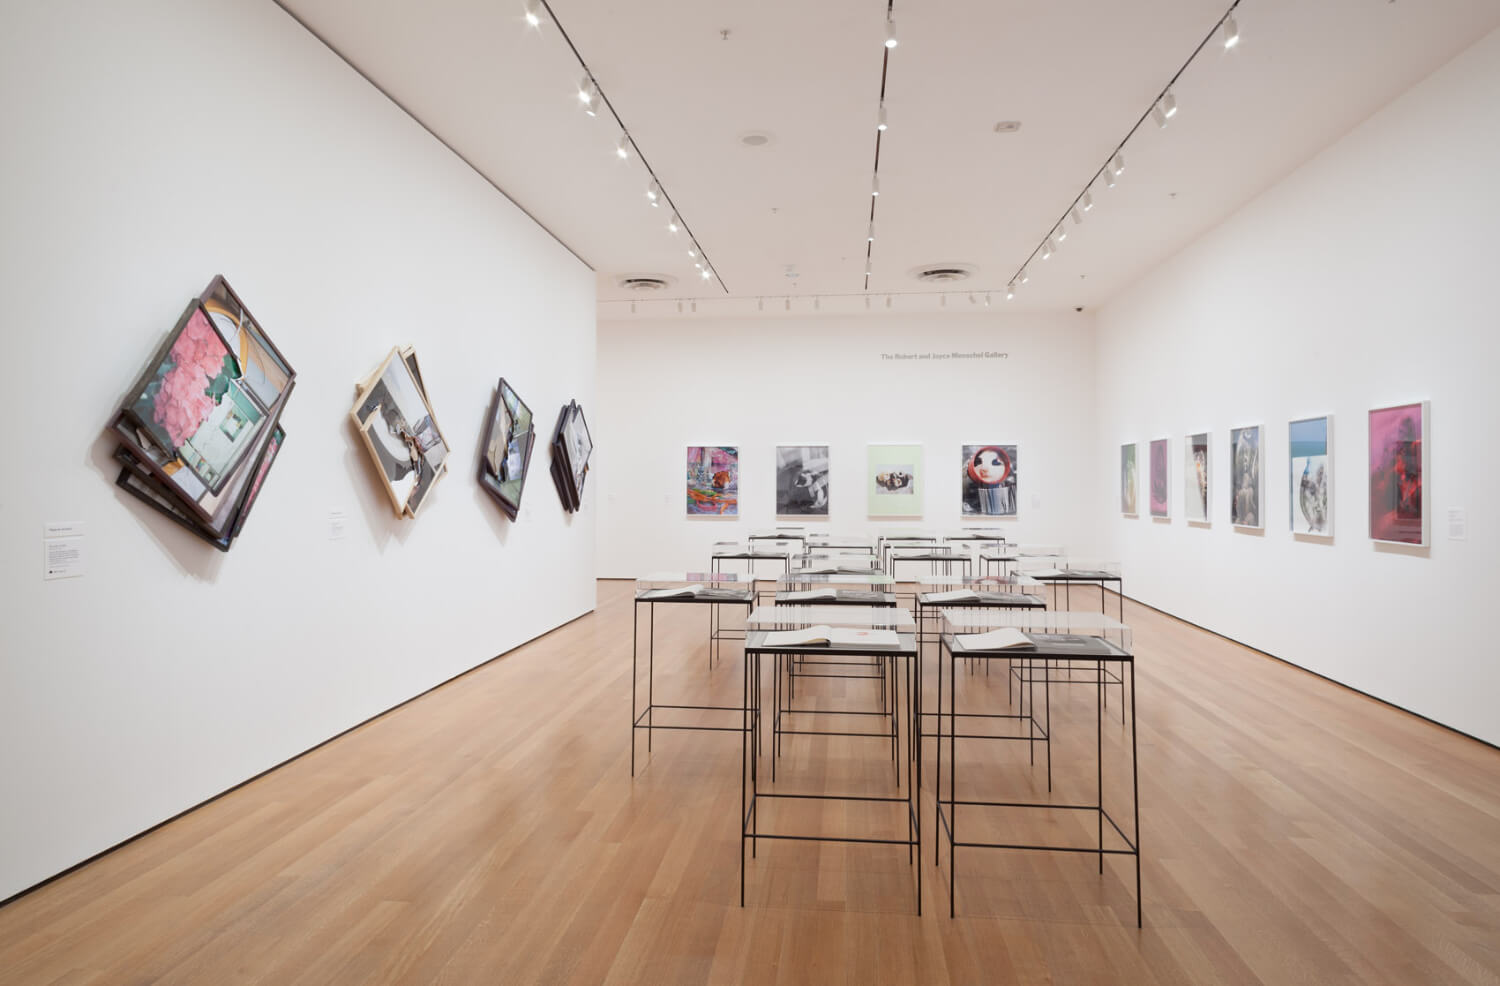 Installation view of the exhibition New Photography 2013. © 2013 The Museum of Modern Art, New York. Photograph by Thomas Griesel - 5.jpg